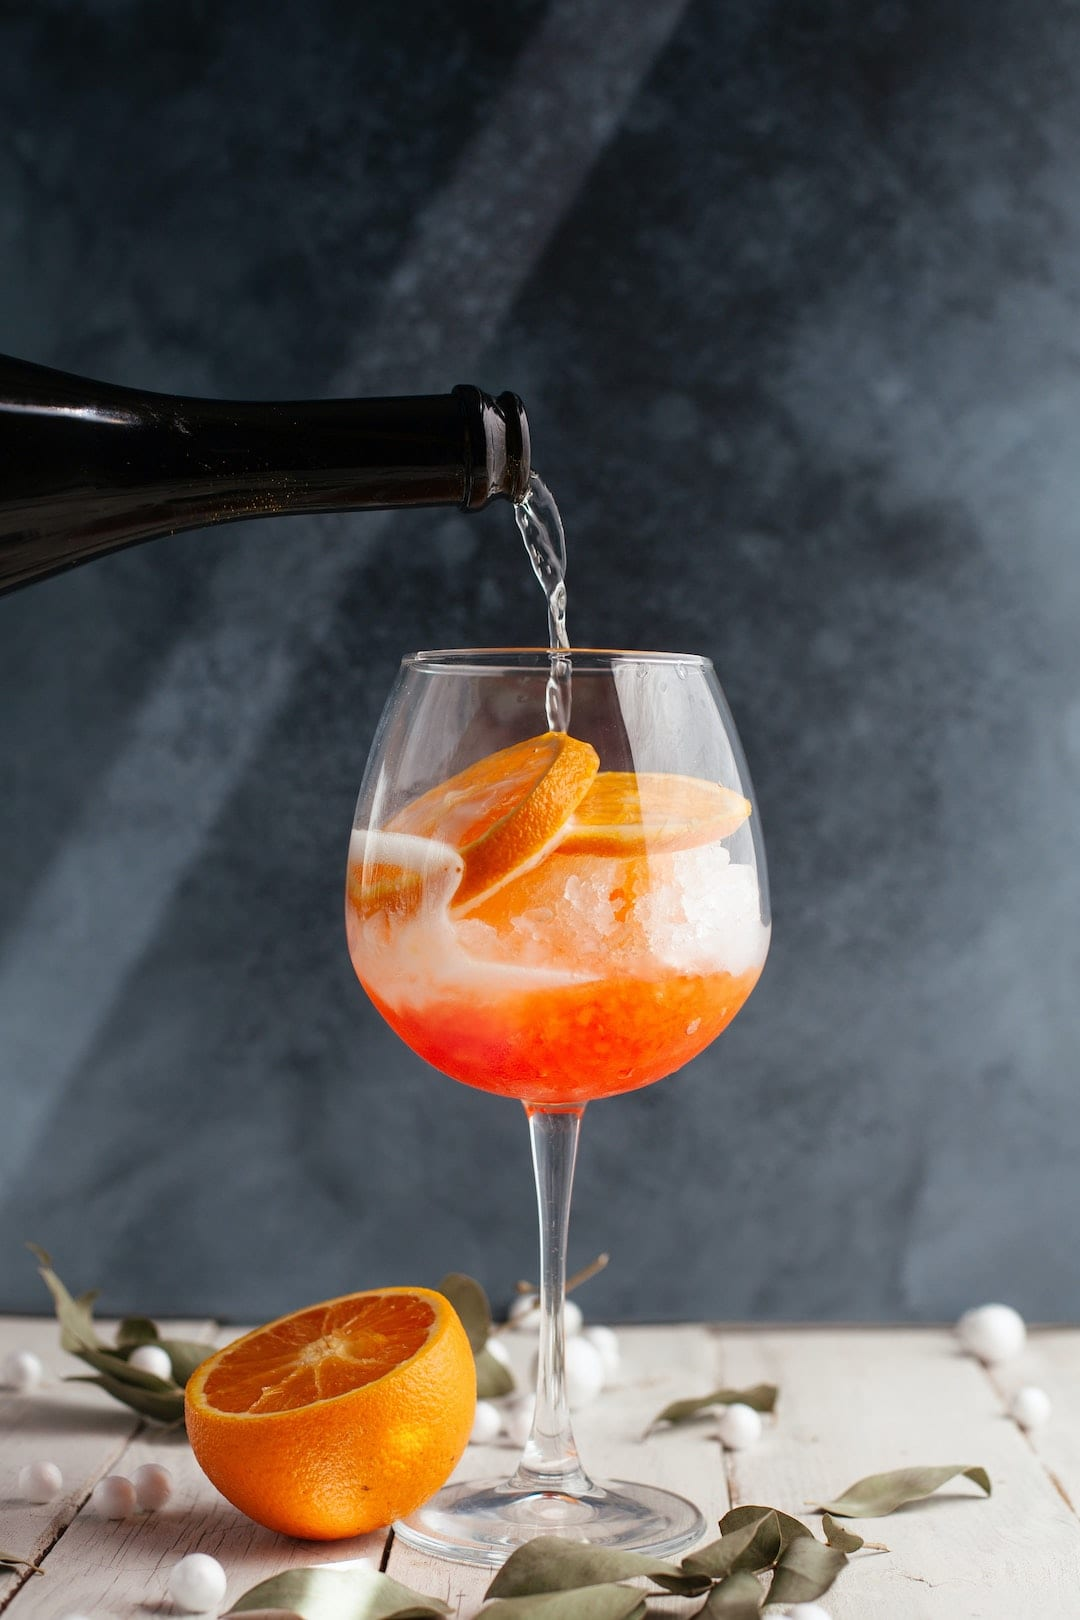 the popular italian cocktail spritz for their aperitivo culture has the lovely orange color and bitter sweet taste